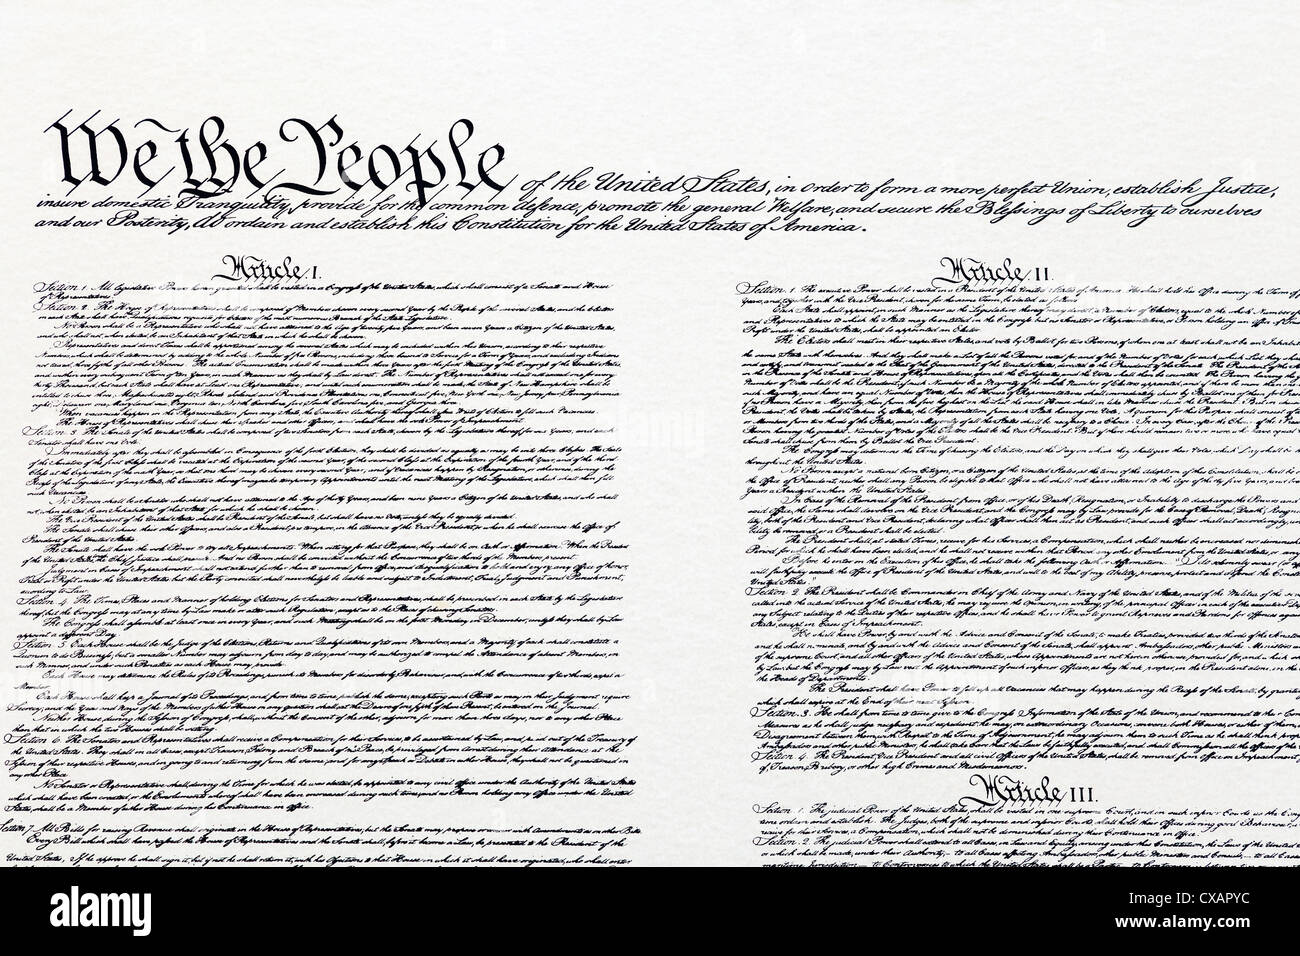 Us Constitution Stock Photos & Us Constitution Stock Images - Alamy